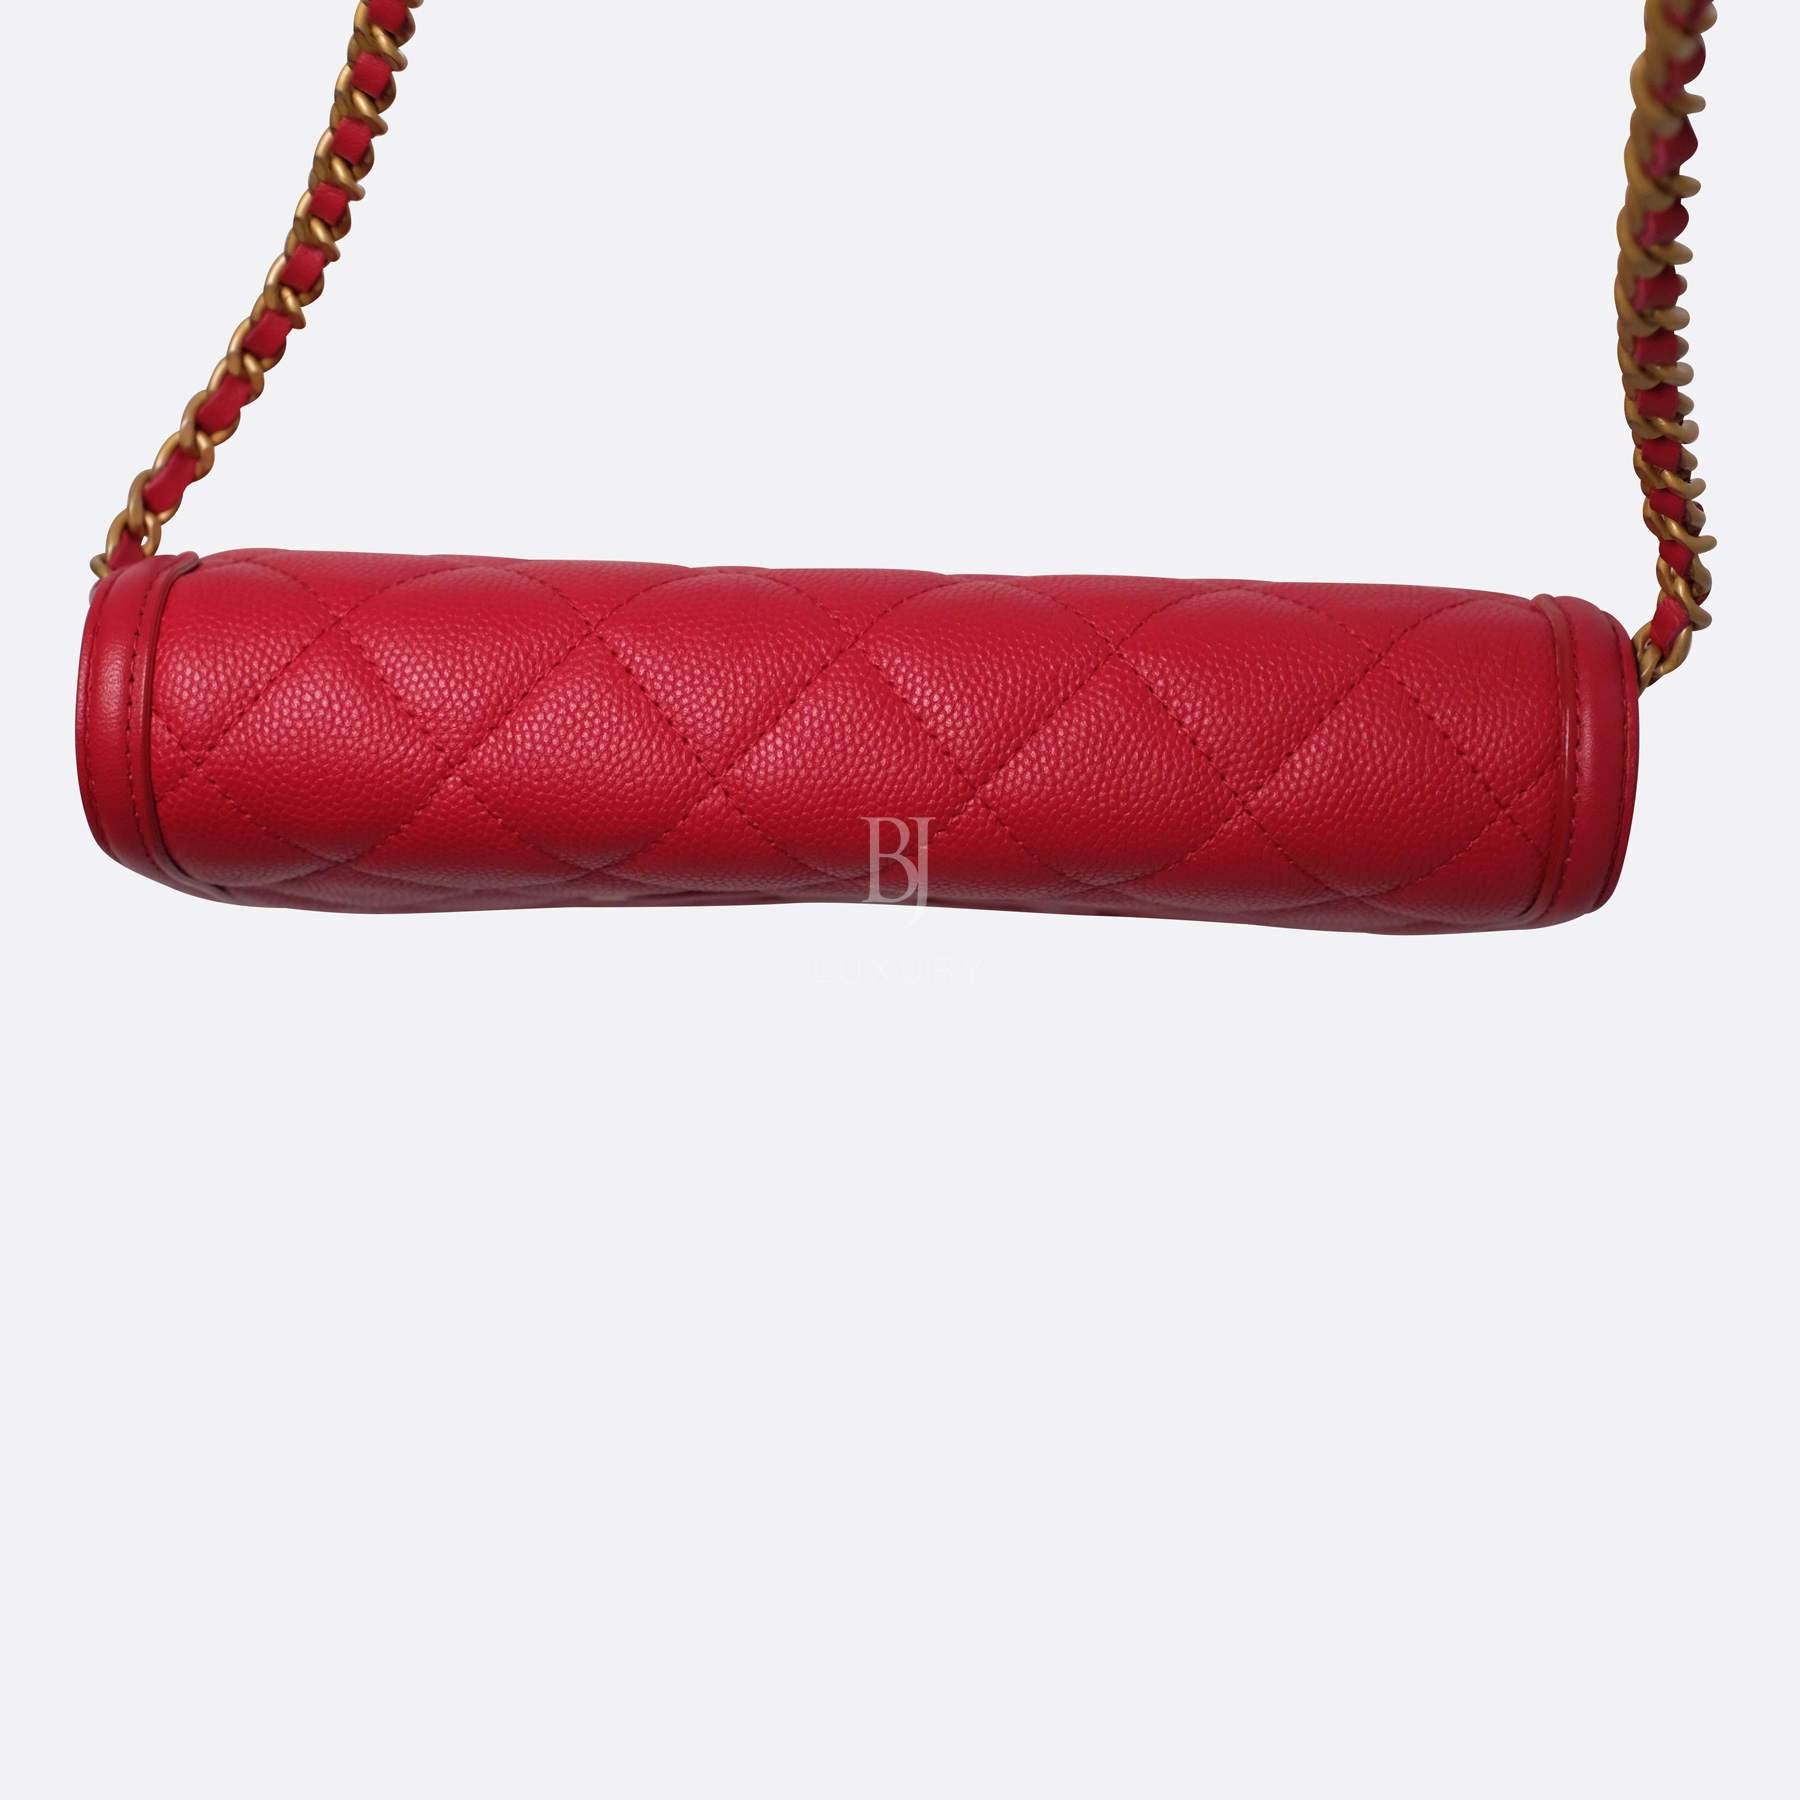 Chanel Wallet On Chain Red Caviar Brushed Gold BJ Luxury 16.jpg